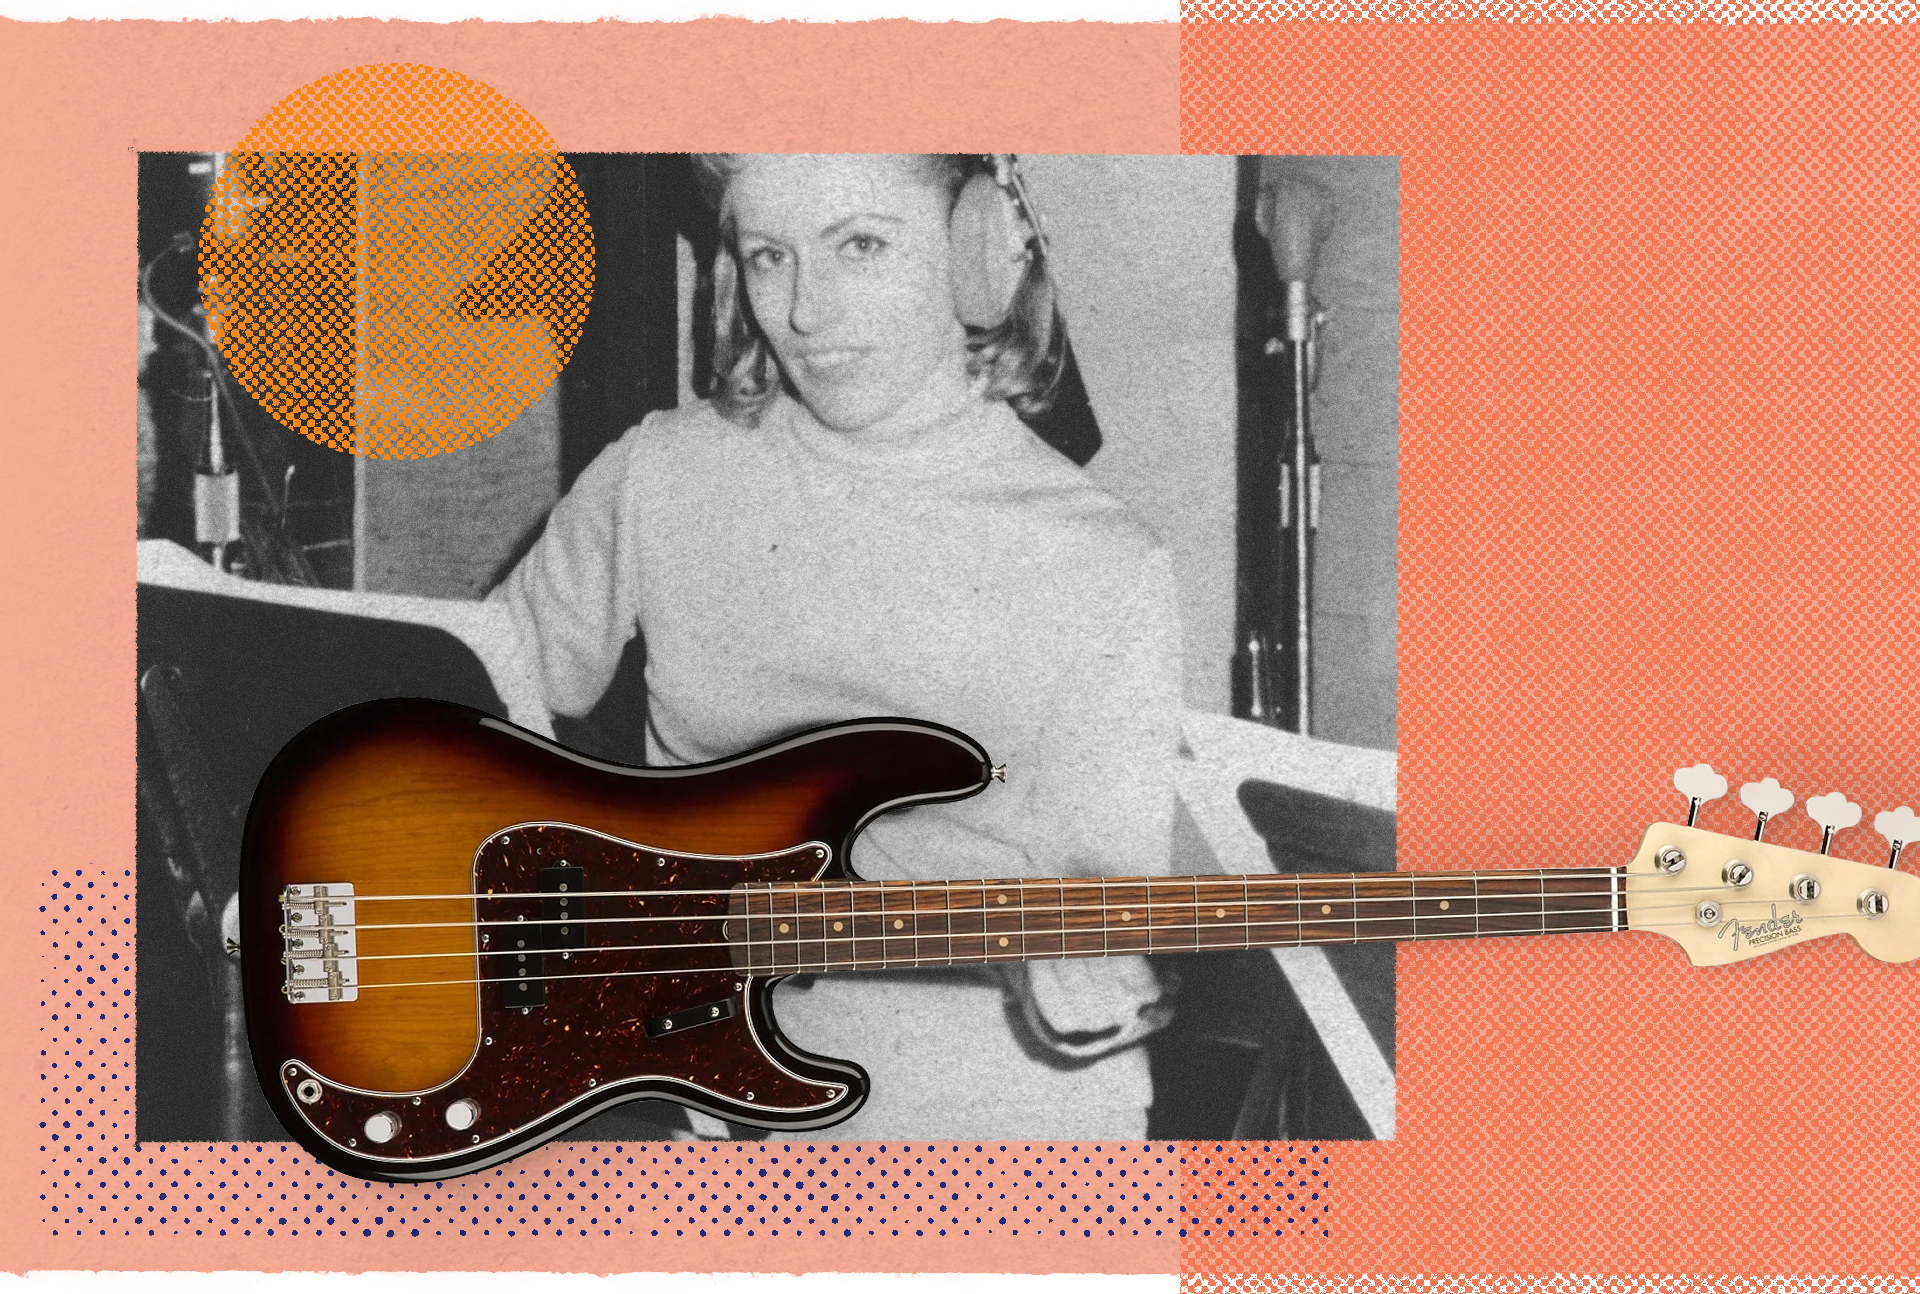 Carol Kaye with the Fender Precision Bass